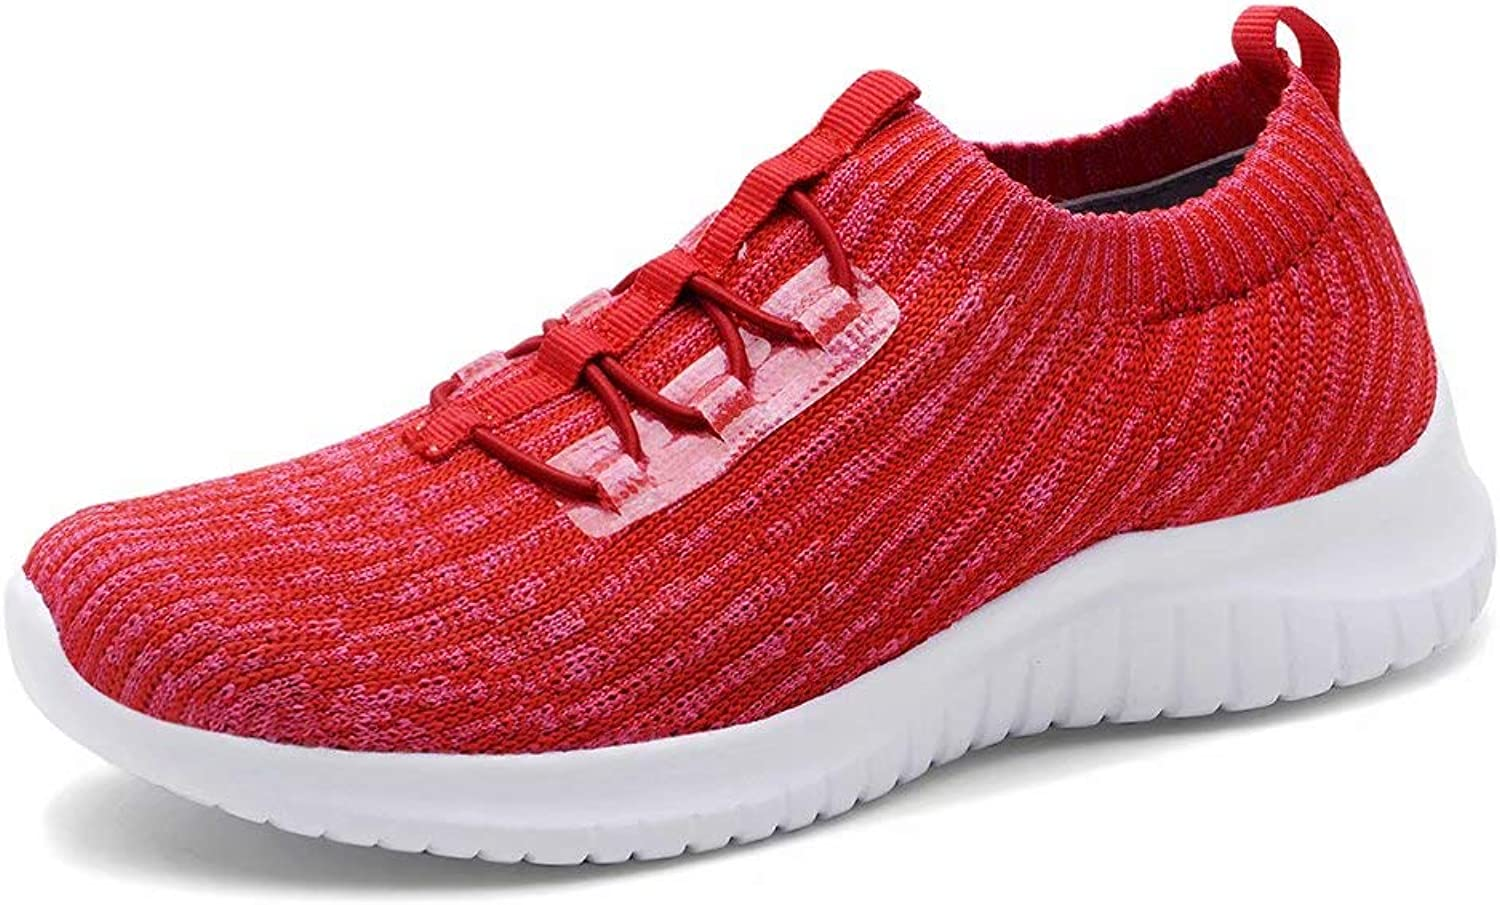 Konhill Women's Lightweight Athletic Running shoes Walking Casual Knit Workout Sneakers, Red, 40